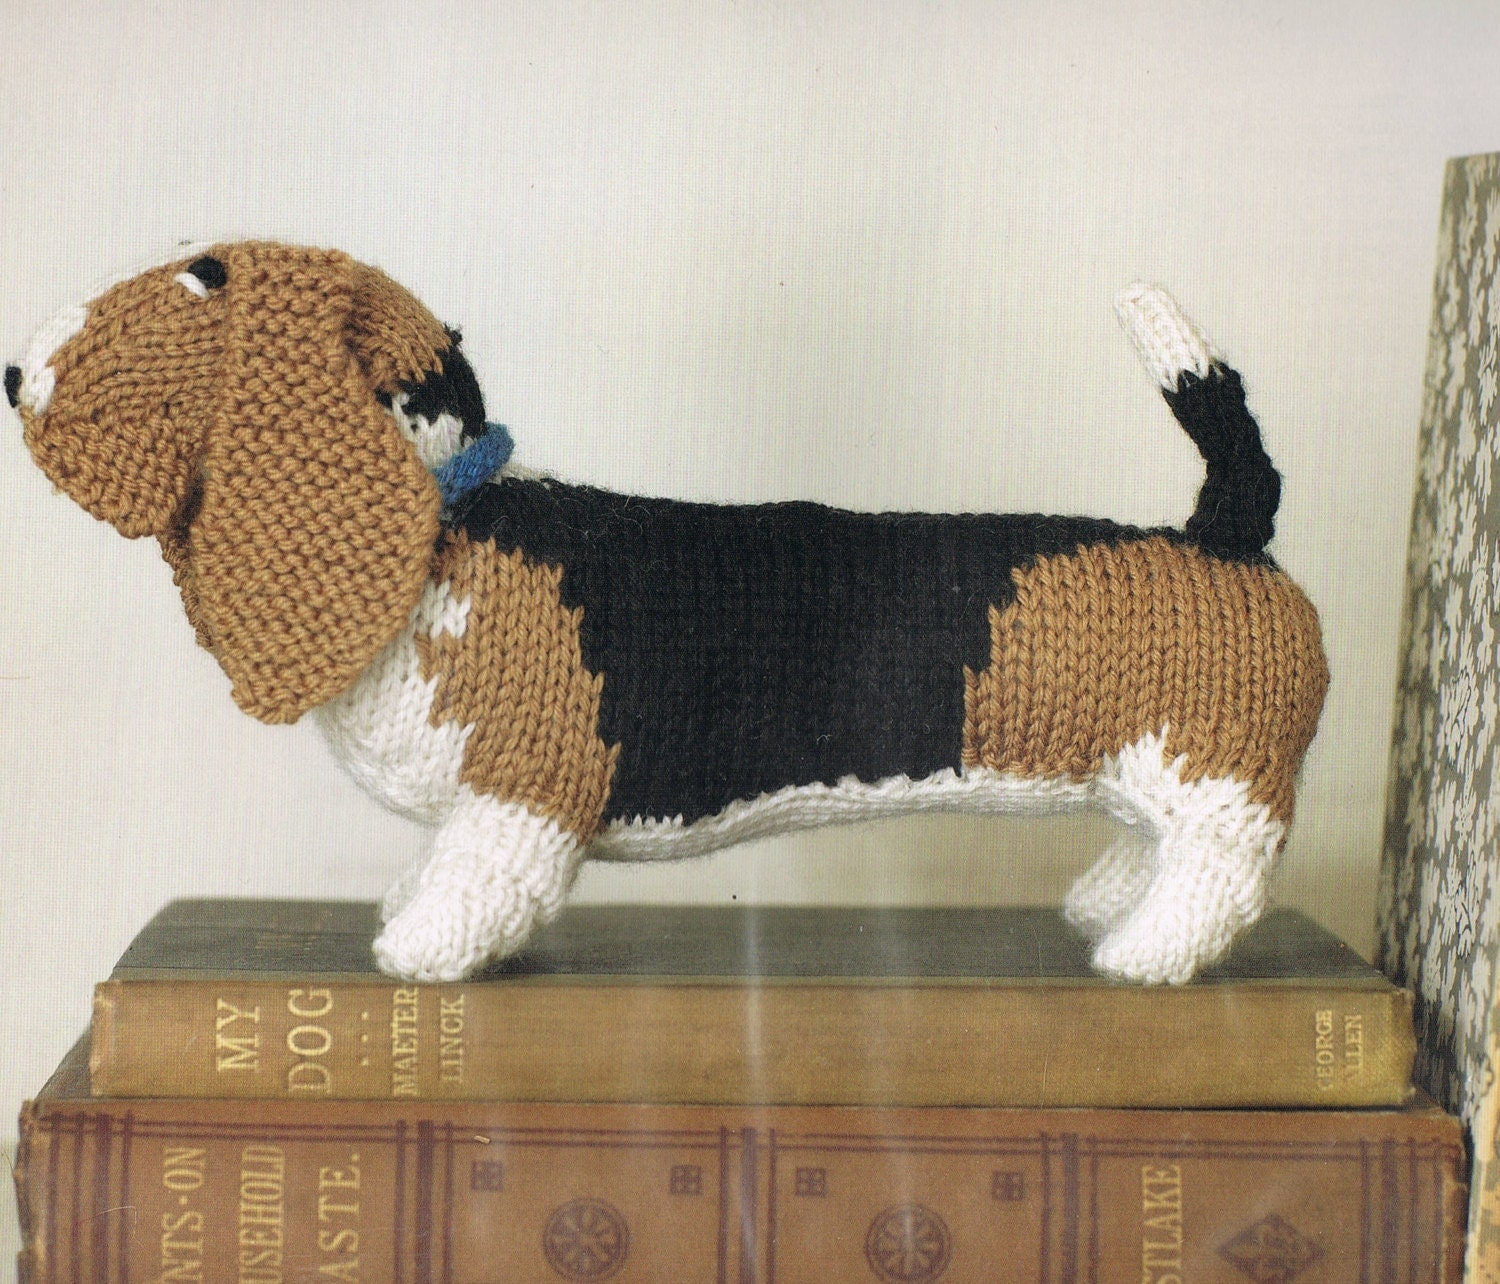 Amigurumi Dog Knitting Patterns : Amigurumi Knitting Pattern Basset Hound Dog by ...